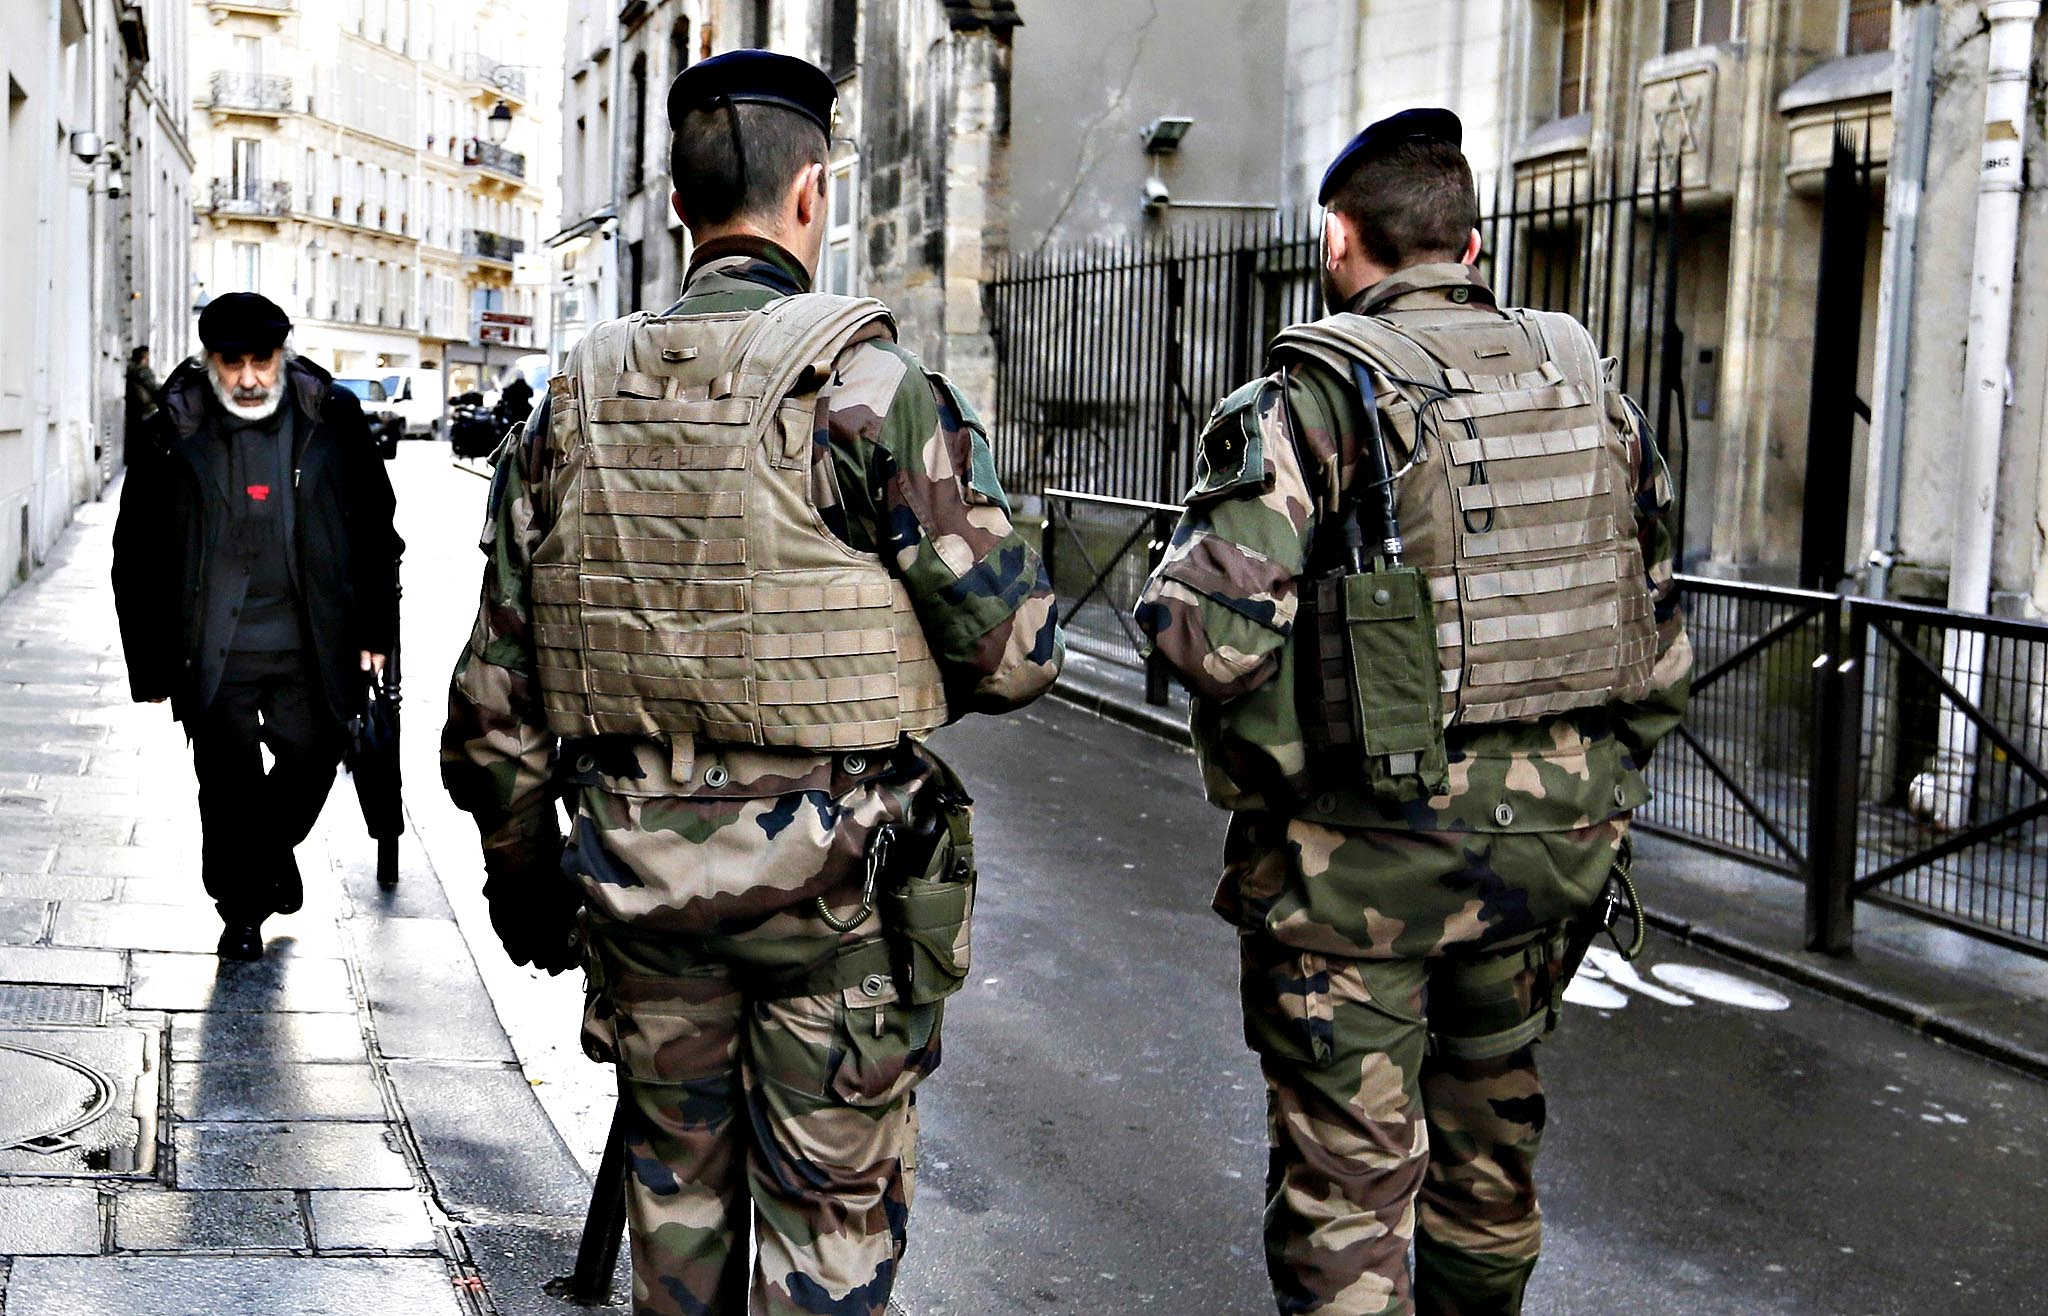 "French soldiers patrol the street in a Jewish neighbourhood near a religious school and a synagogue as part of the highest level of ""Vigipirate"" security plan after last week's Islamic attacks in Paris...French soldiers patrol the street in a Jewish neighbourhood near a religious school and a synagogue as part of the highest level of ""Vigipirate"" security plan after last week's Islamic attacks in Paris January 14, 2015. France deploys 10,000 soldiers on home soil and posts almost 5,000 extra police officers after the killing of 17 people by Islamist militants in Paris last week, officials said."